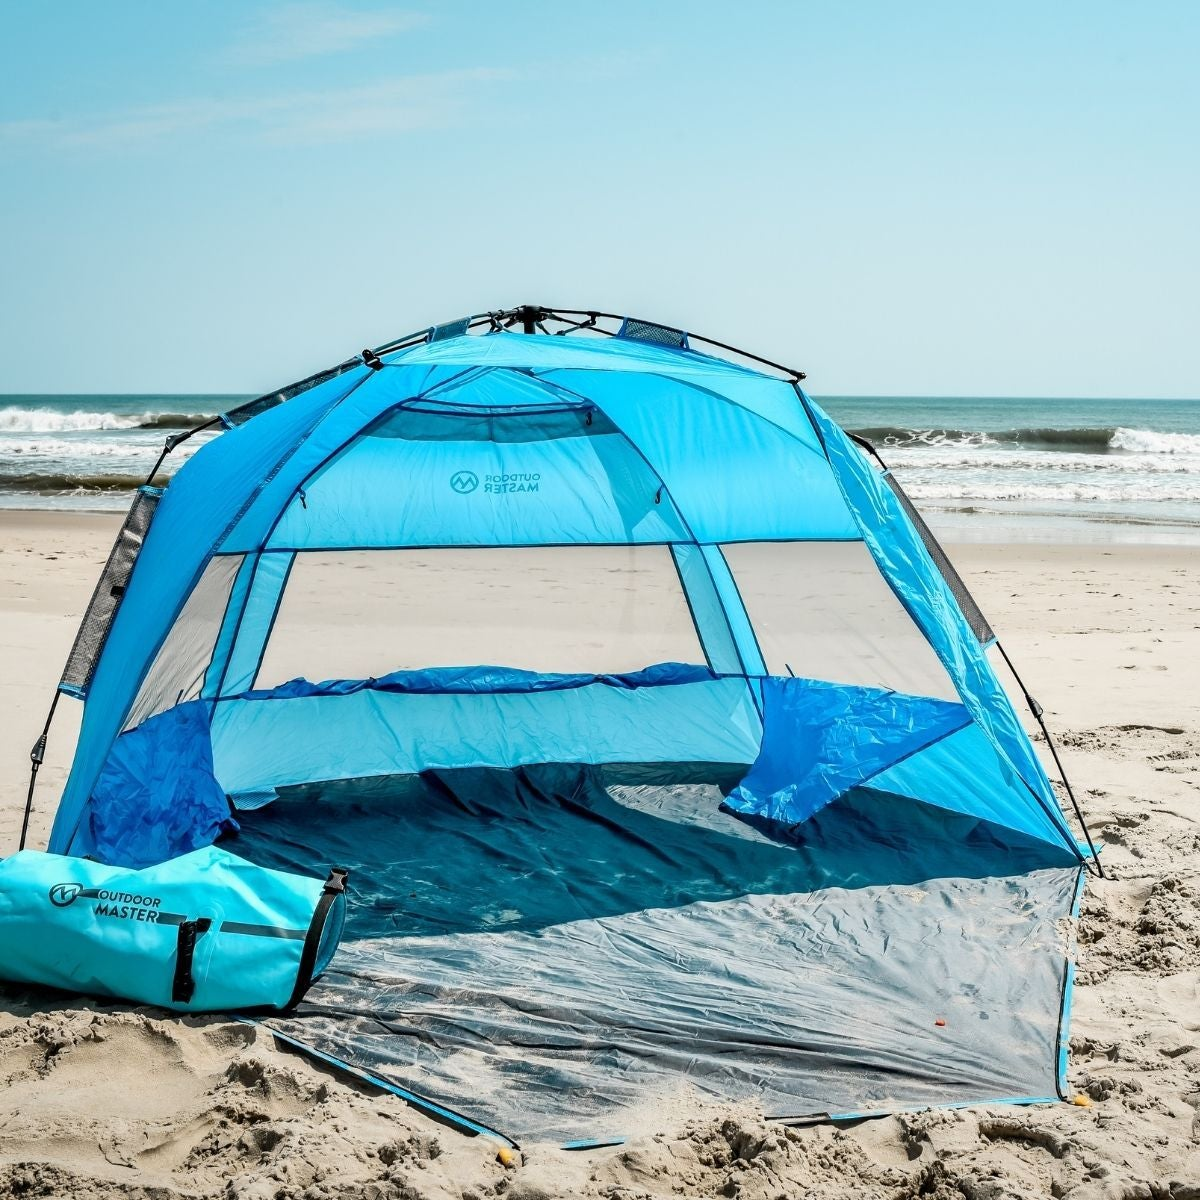 blue pop-up tent on the beach